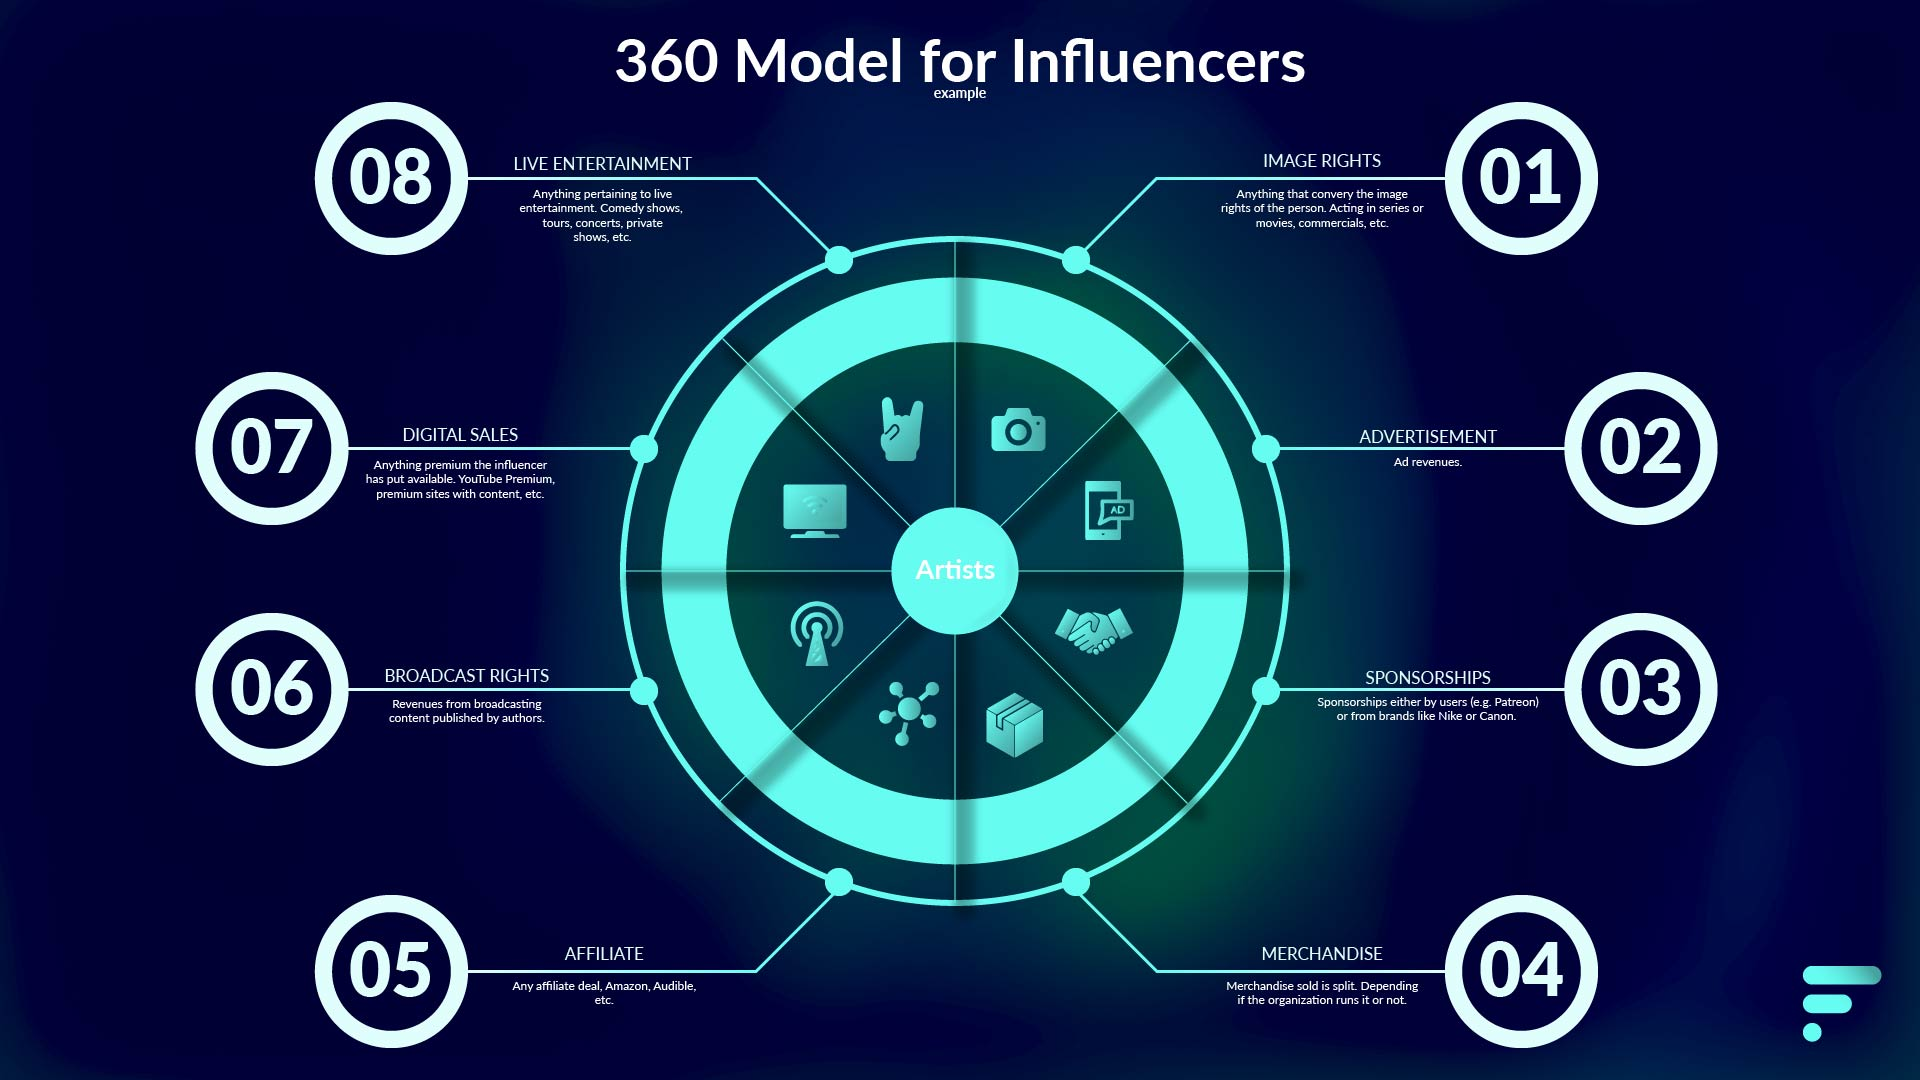 360 model for influencers